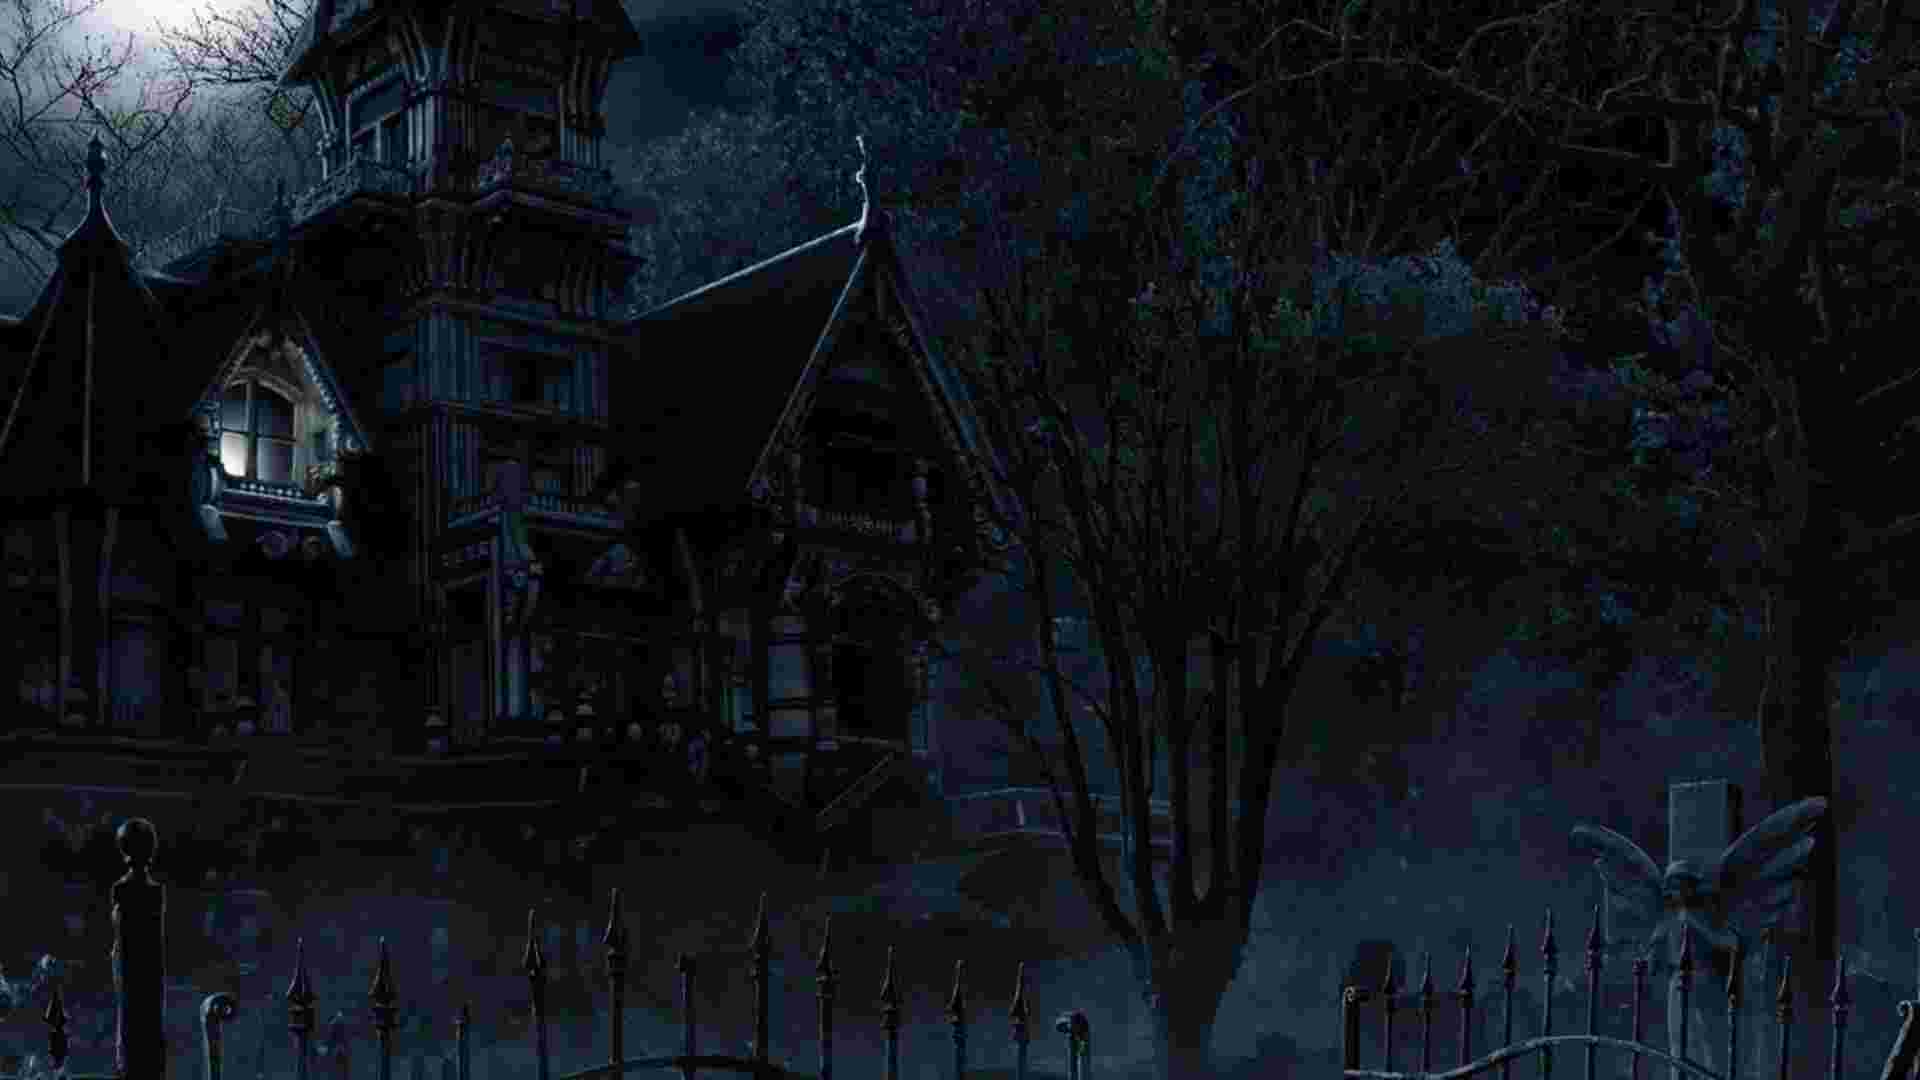 haloween-haunted-hause